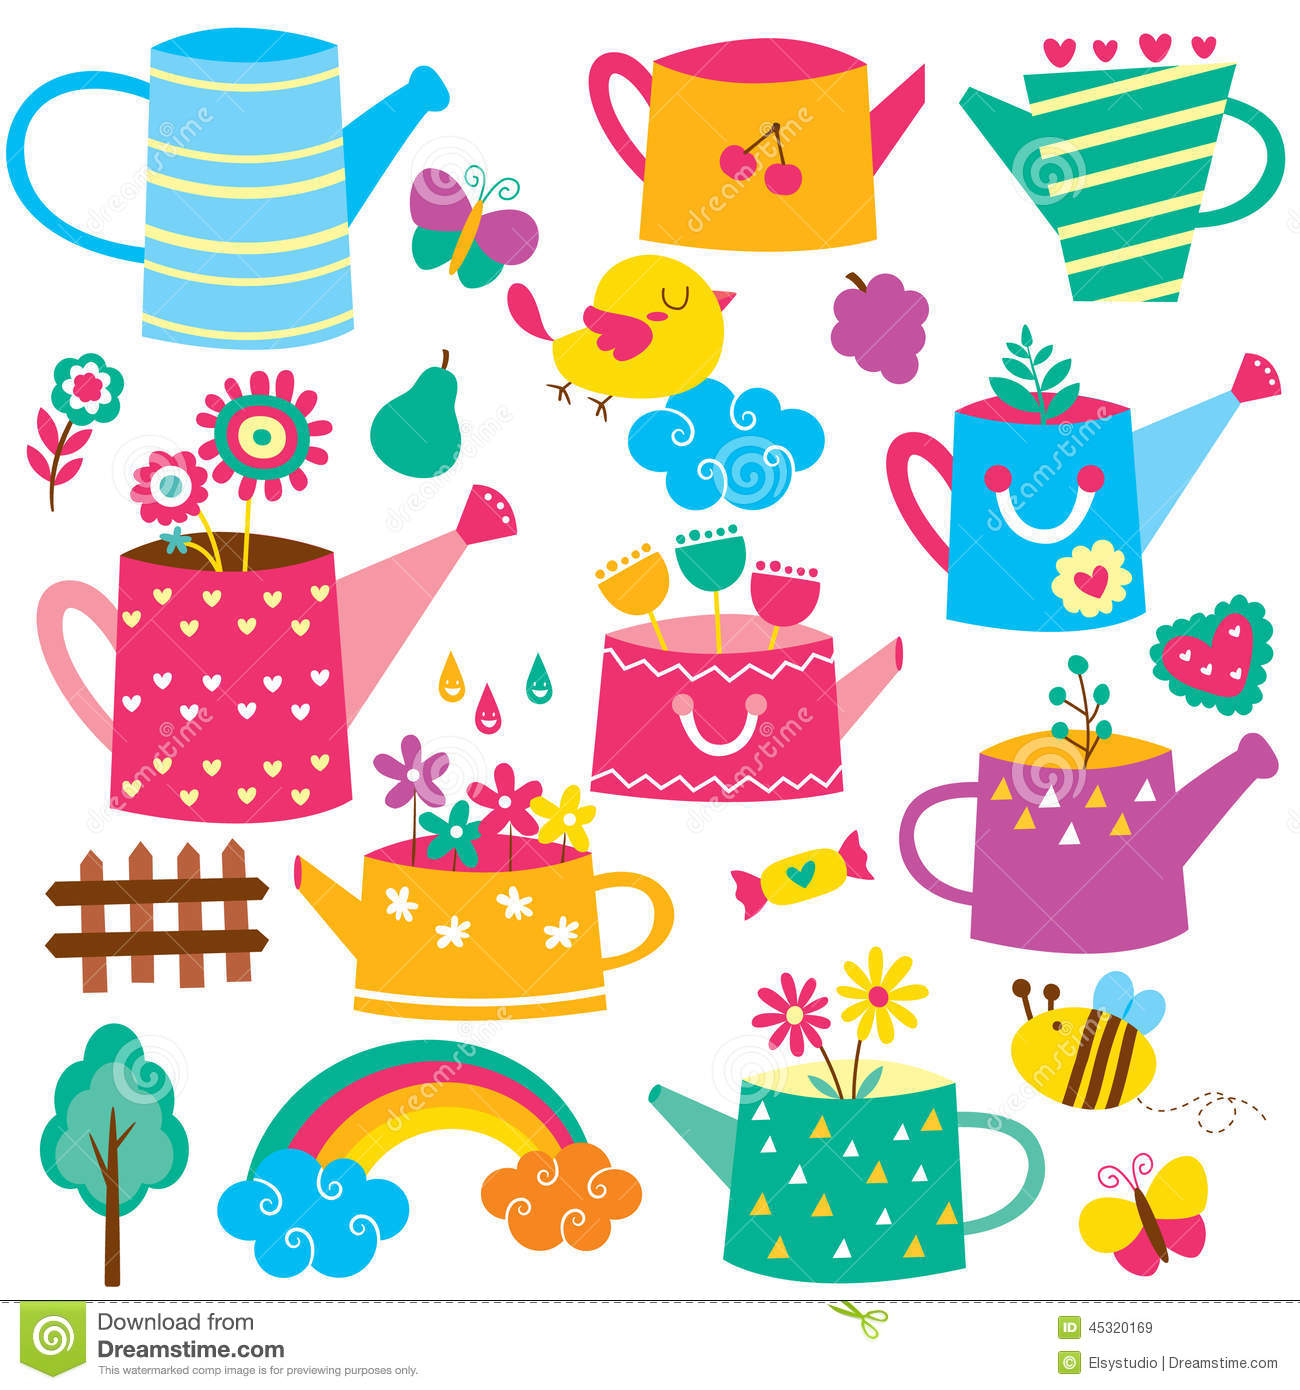 Flowers with Watering Can Clip Art